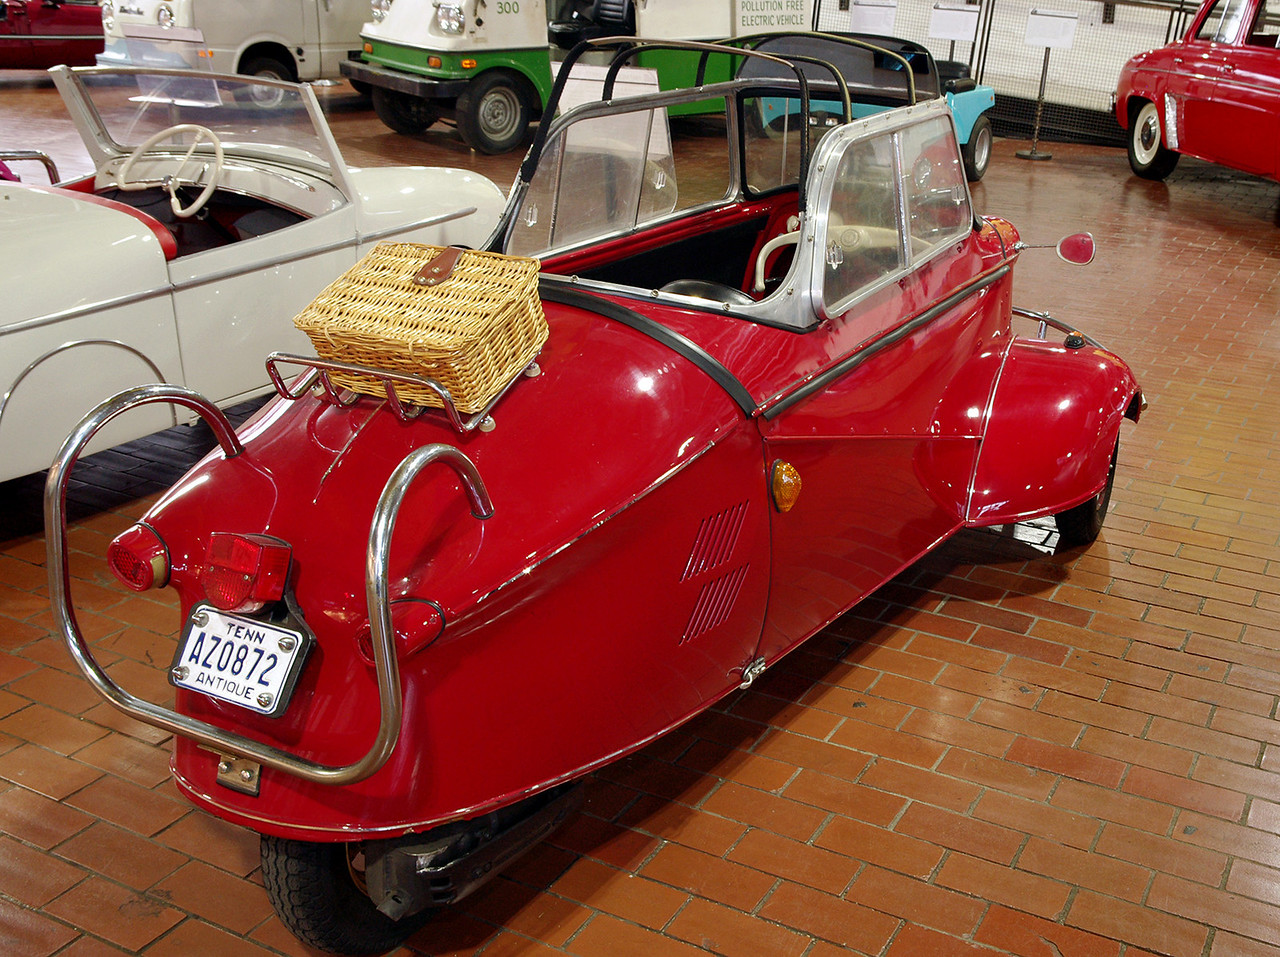 """1957 Messerschmitt KR200, rear view; Lane Motor Museum, Nashville, Tennessee. From their website:<br /> """"Although it bears the name of the famous aircraft builder–Willy Messerschmitt–he had little to do with the car's design. Fritz Fend designed the car, and it was built at Messerschmitt's factory which was restricted from building airplanes after World War II. This car appealed to motorcyclists who wanted more weatherproof transportation and to customers who found it cost half the price of a Volkswagen."""""""